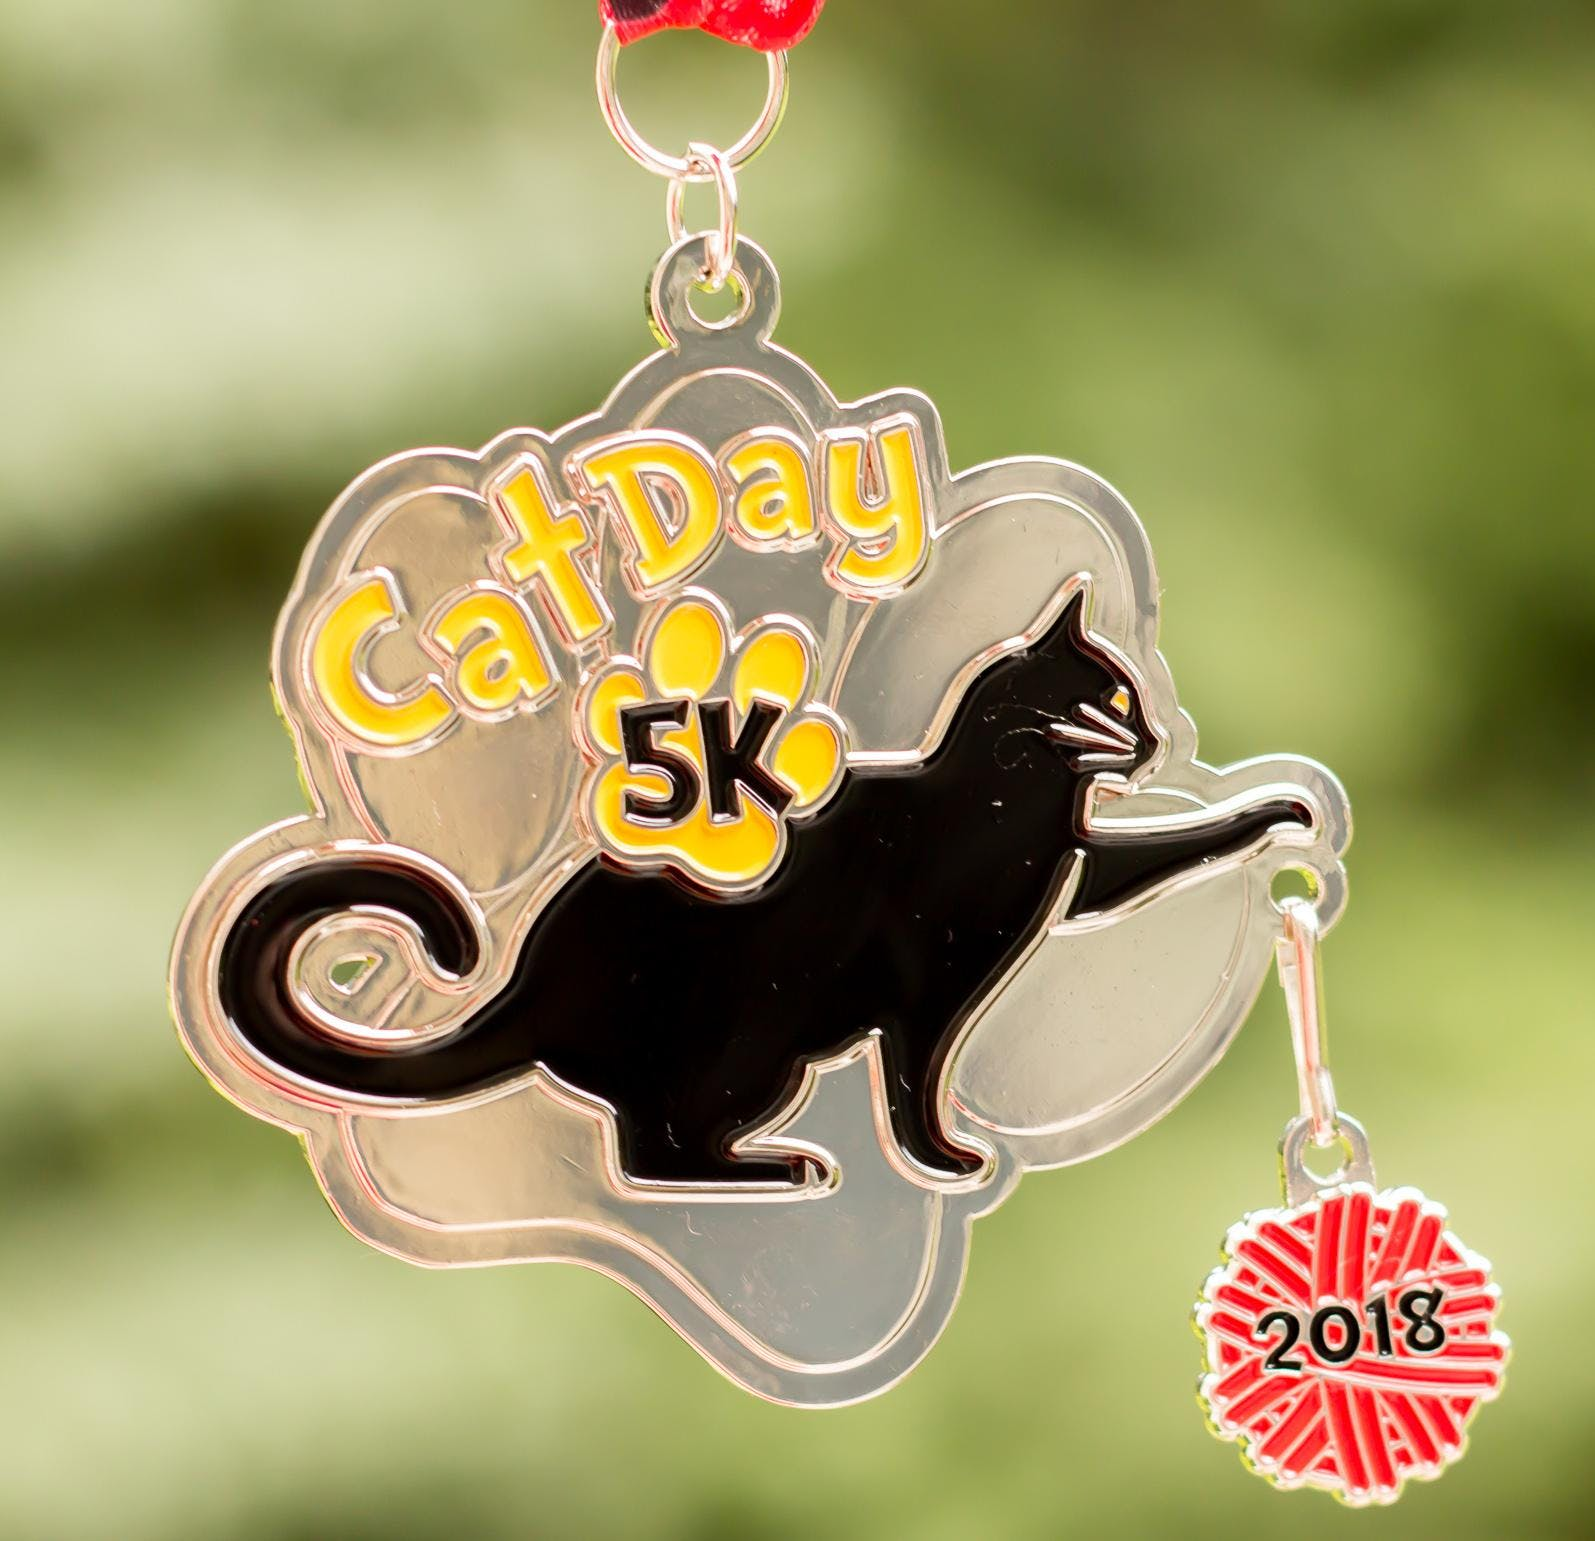 Now Only $10 Cat Day 5K & 10K - Savannah